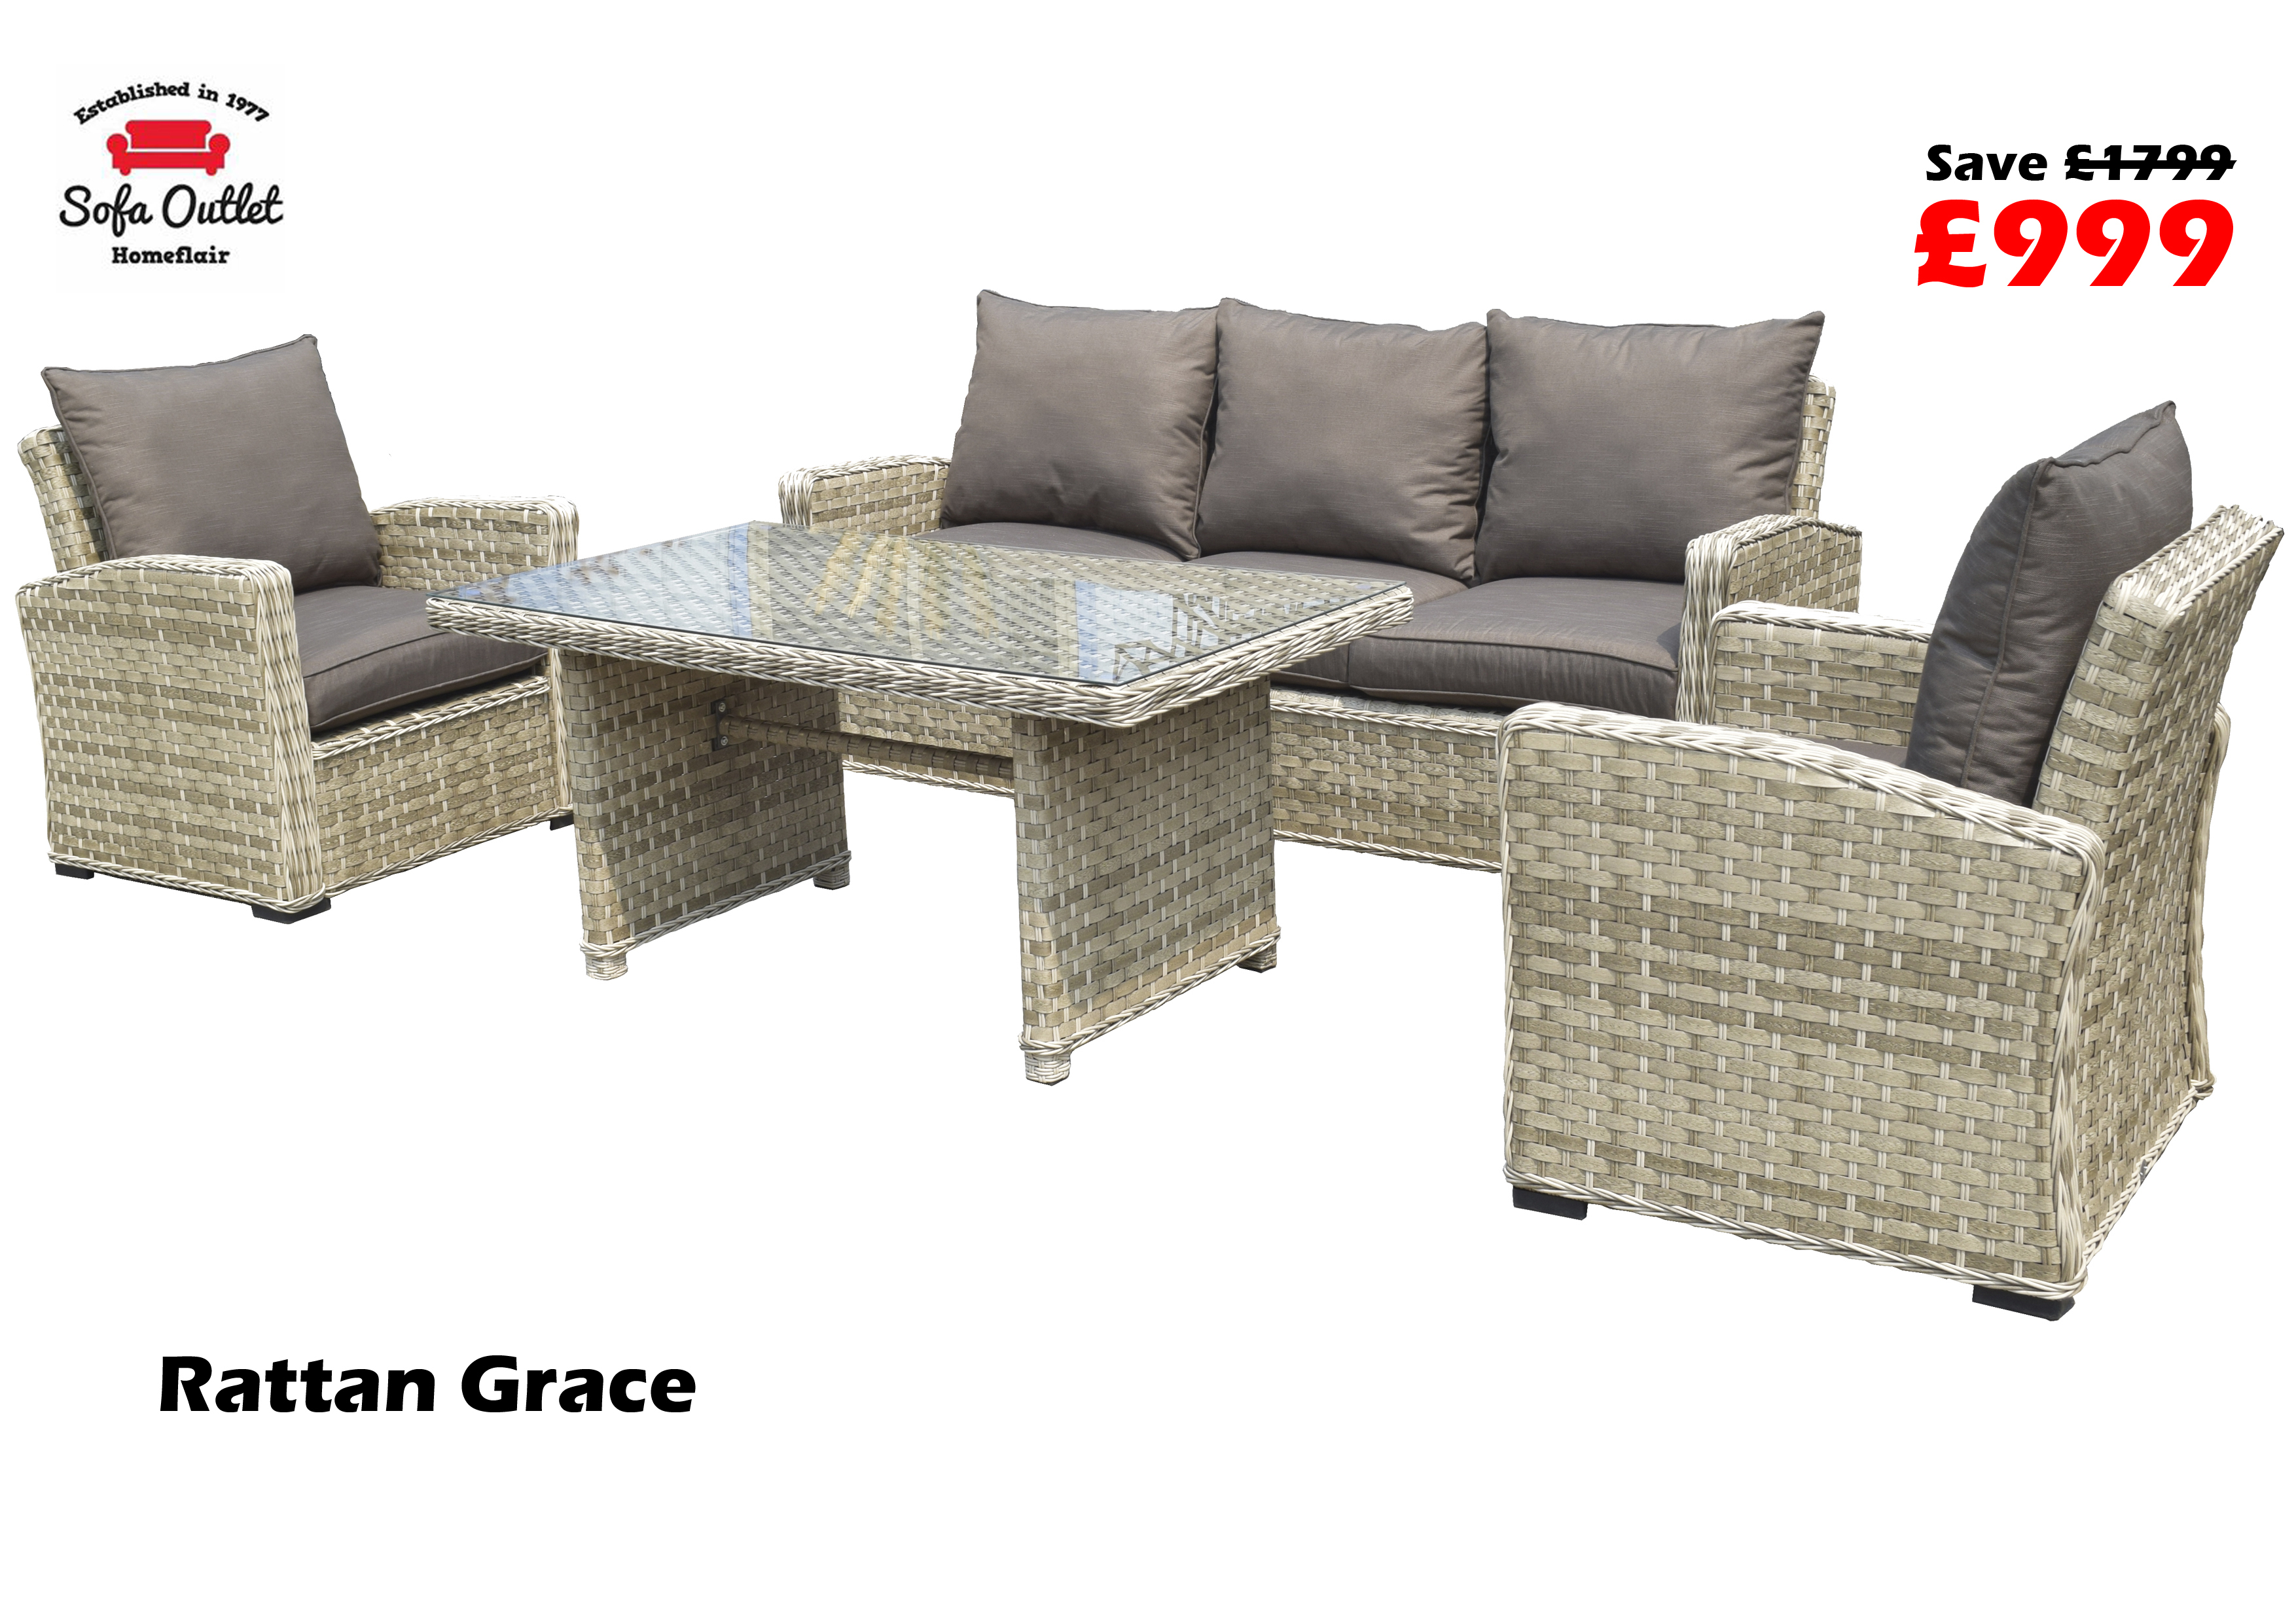 Homeflair Rattan Garden Furniture Grace Grey/brown 3 Seater Sofa + Inside Grace Sofa Chairs (Image 19 of 25)